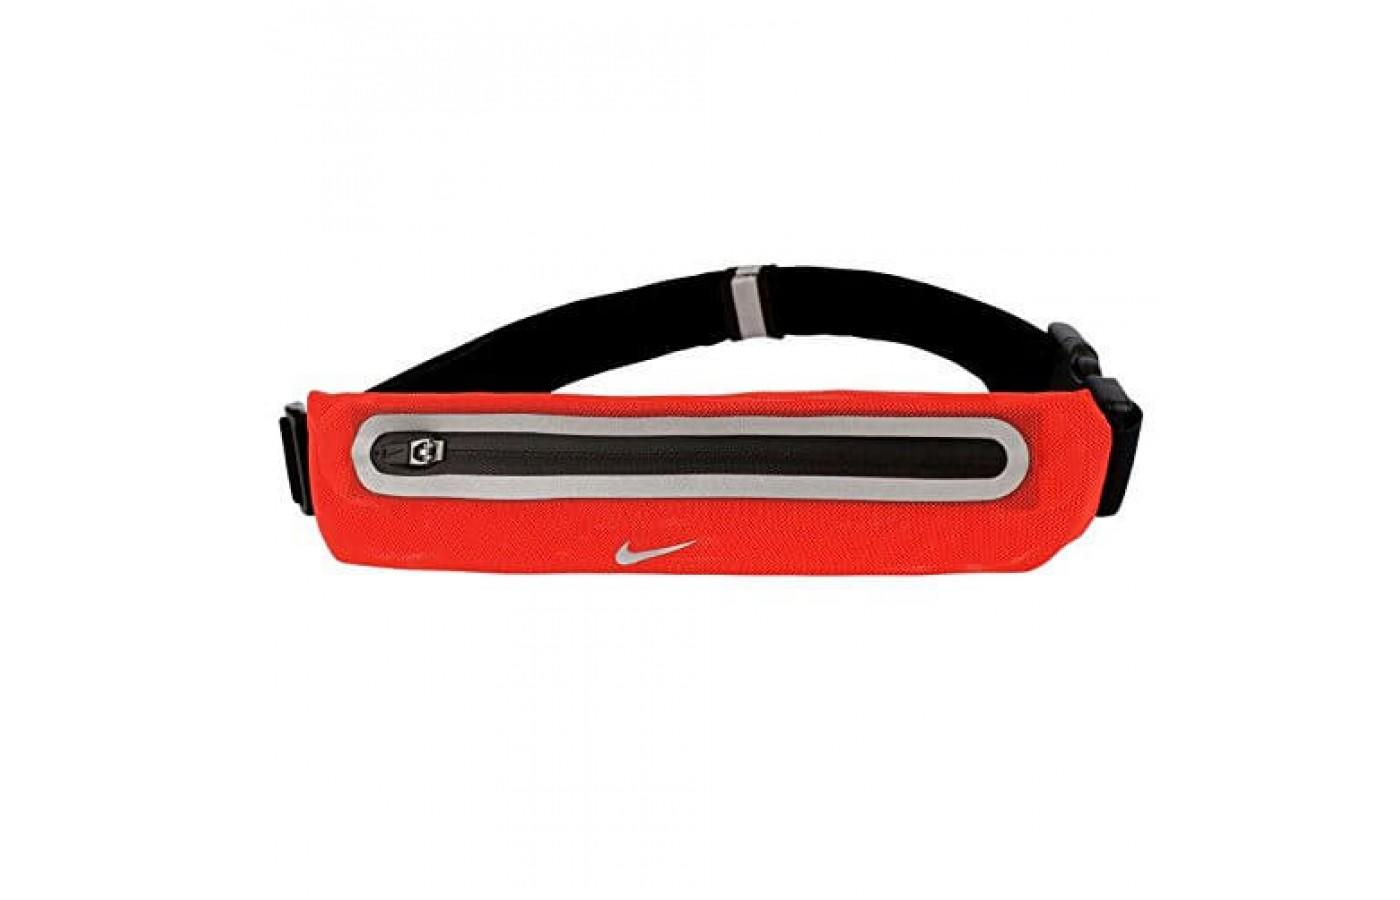 The Nike Lean Waist Pack is made of stretchy fabric